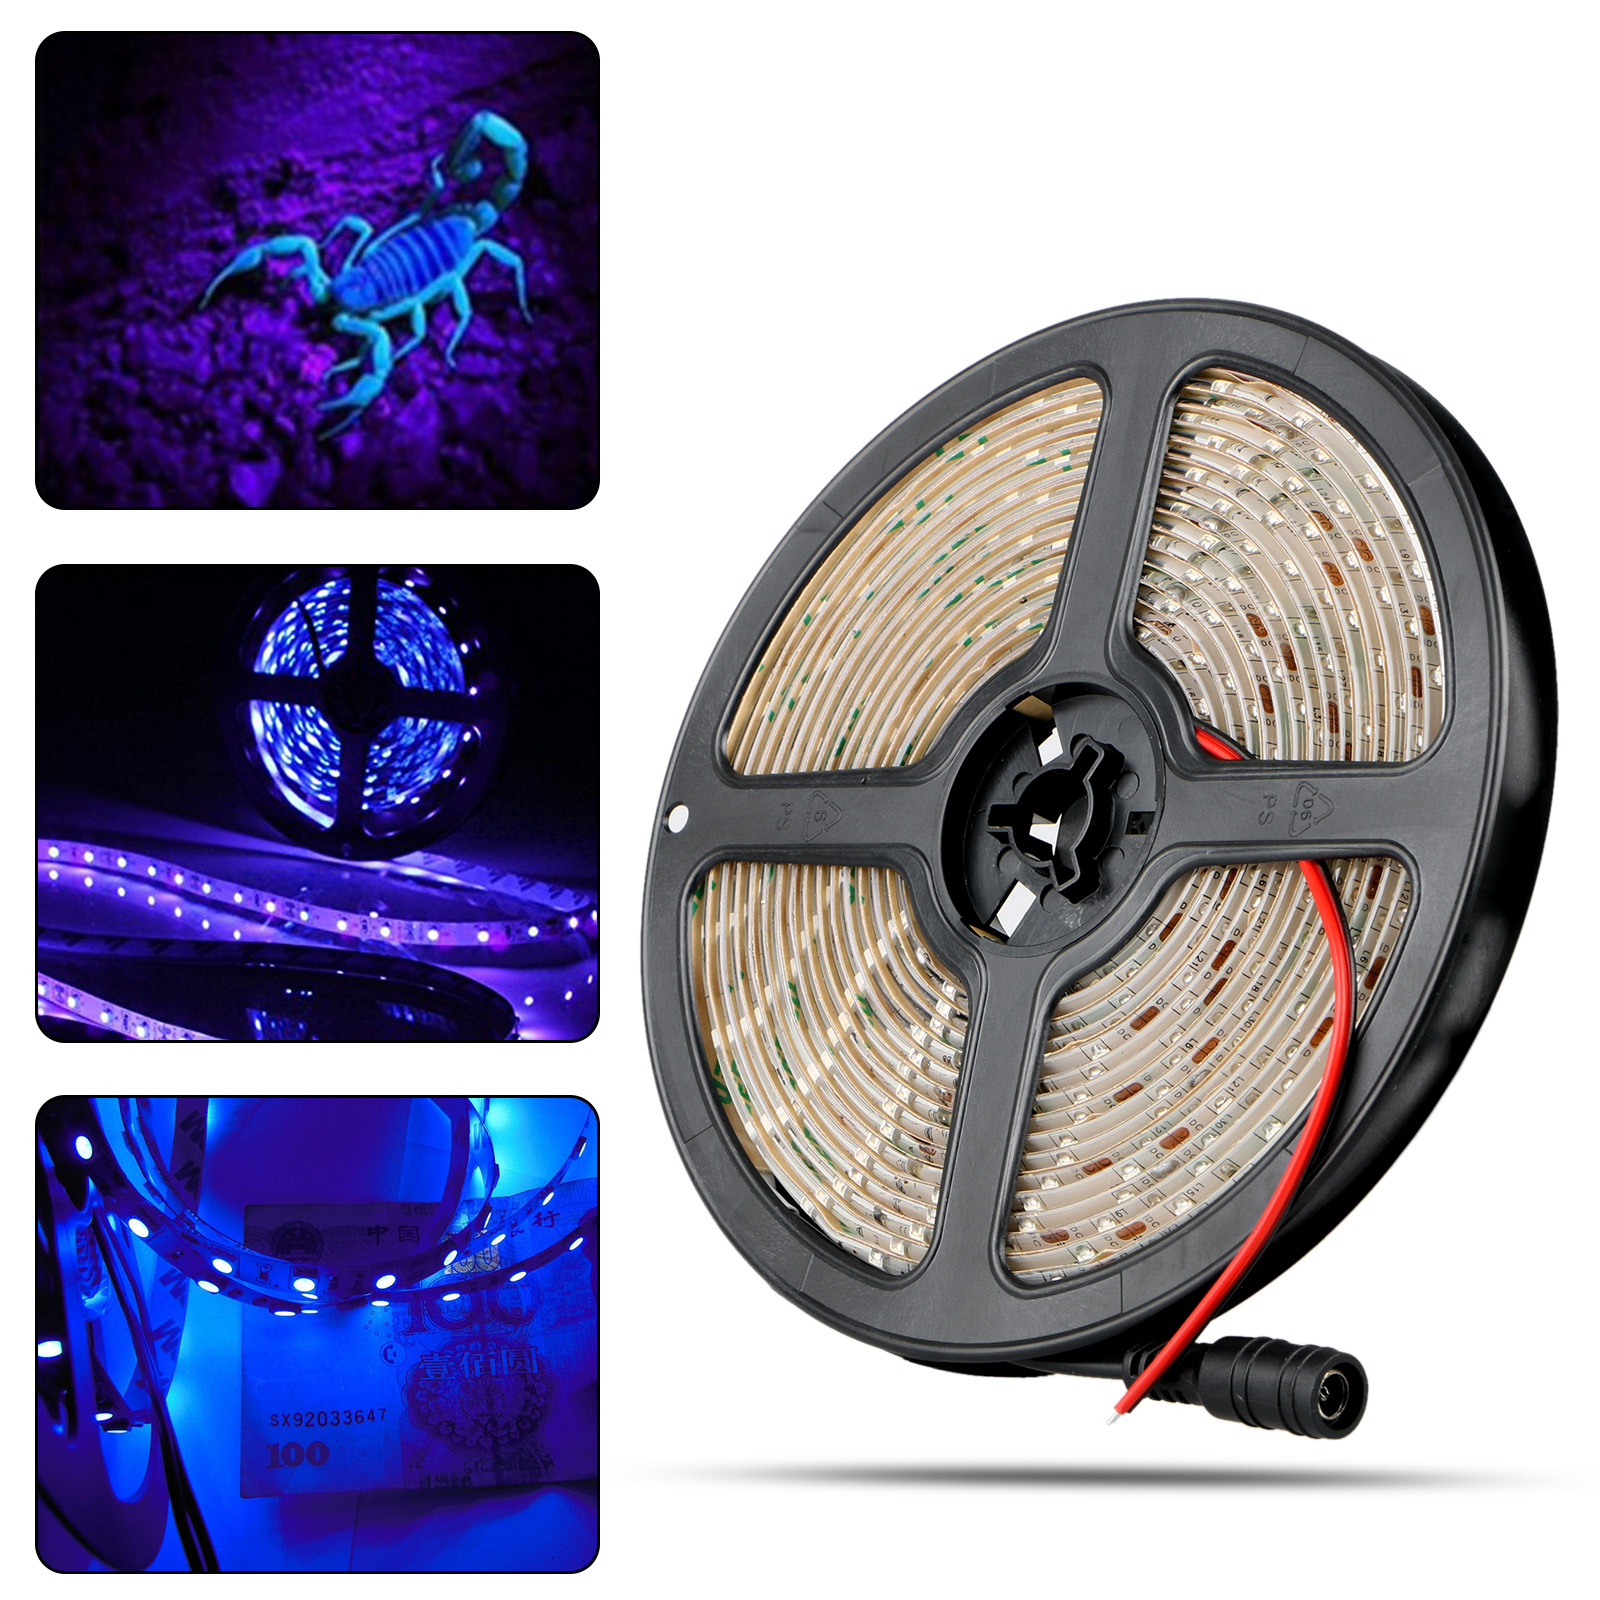 TSV UV/Ultraviolet Black Lights LED Strip 300 LEDs 16.4Ft/5M 3528 Flexible Waterproof Blacklights Purple Light Night Fishing Sterilization Implicitly Party